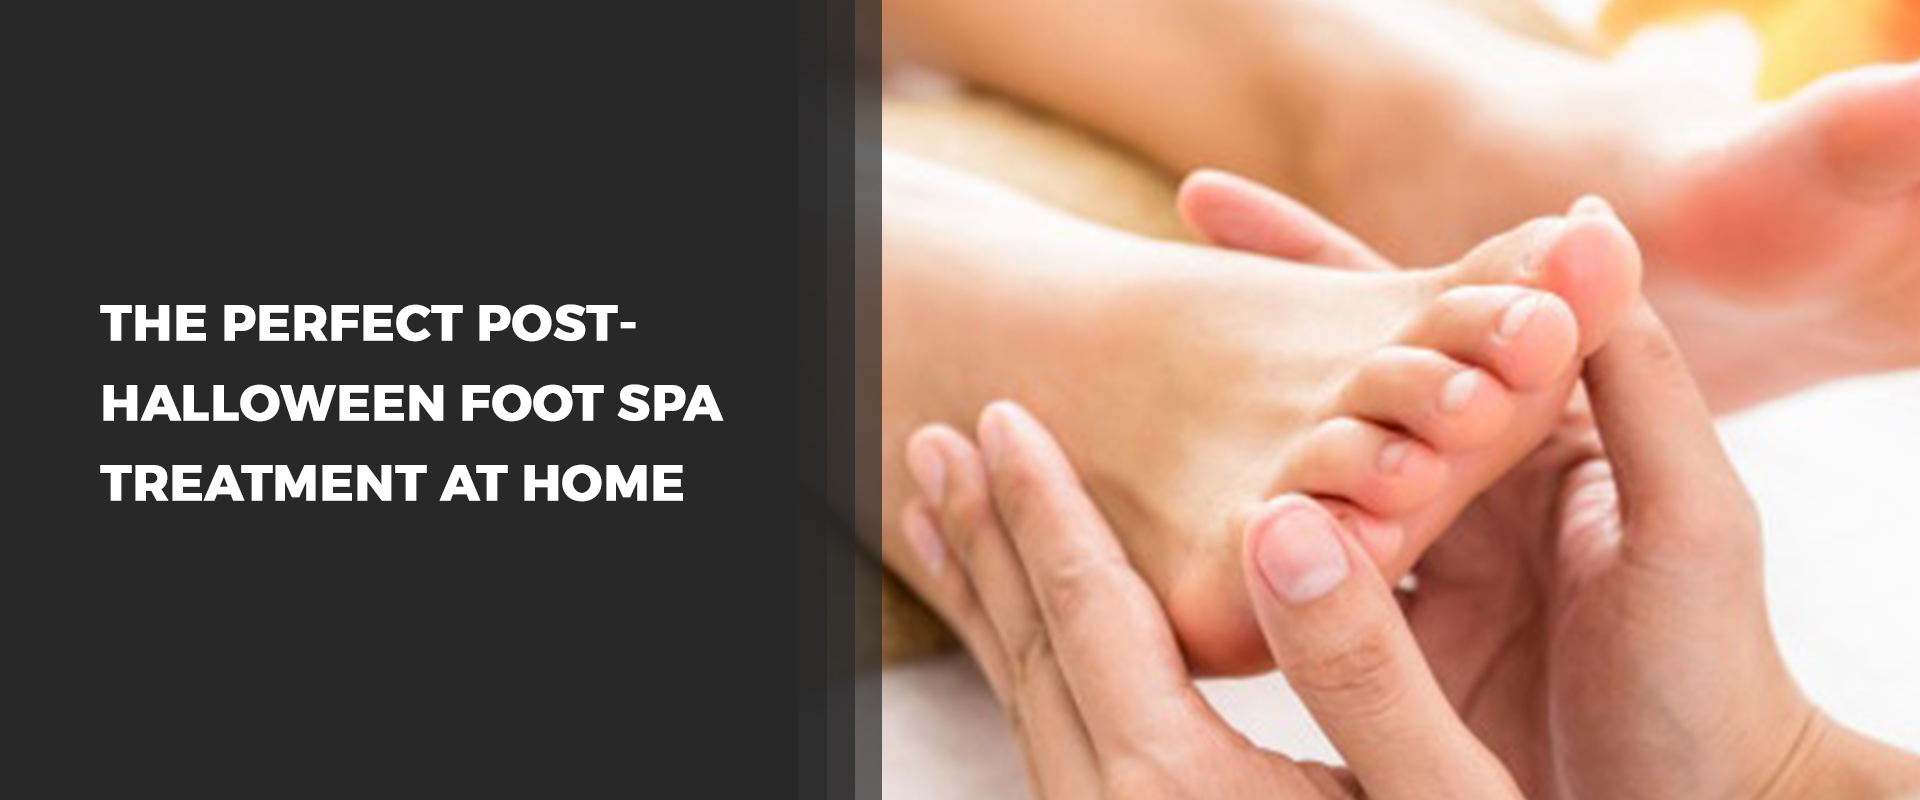 Post-Halloween Foot Spa Treatment At Home